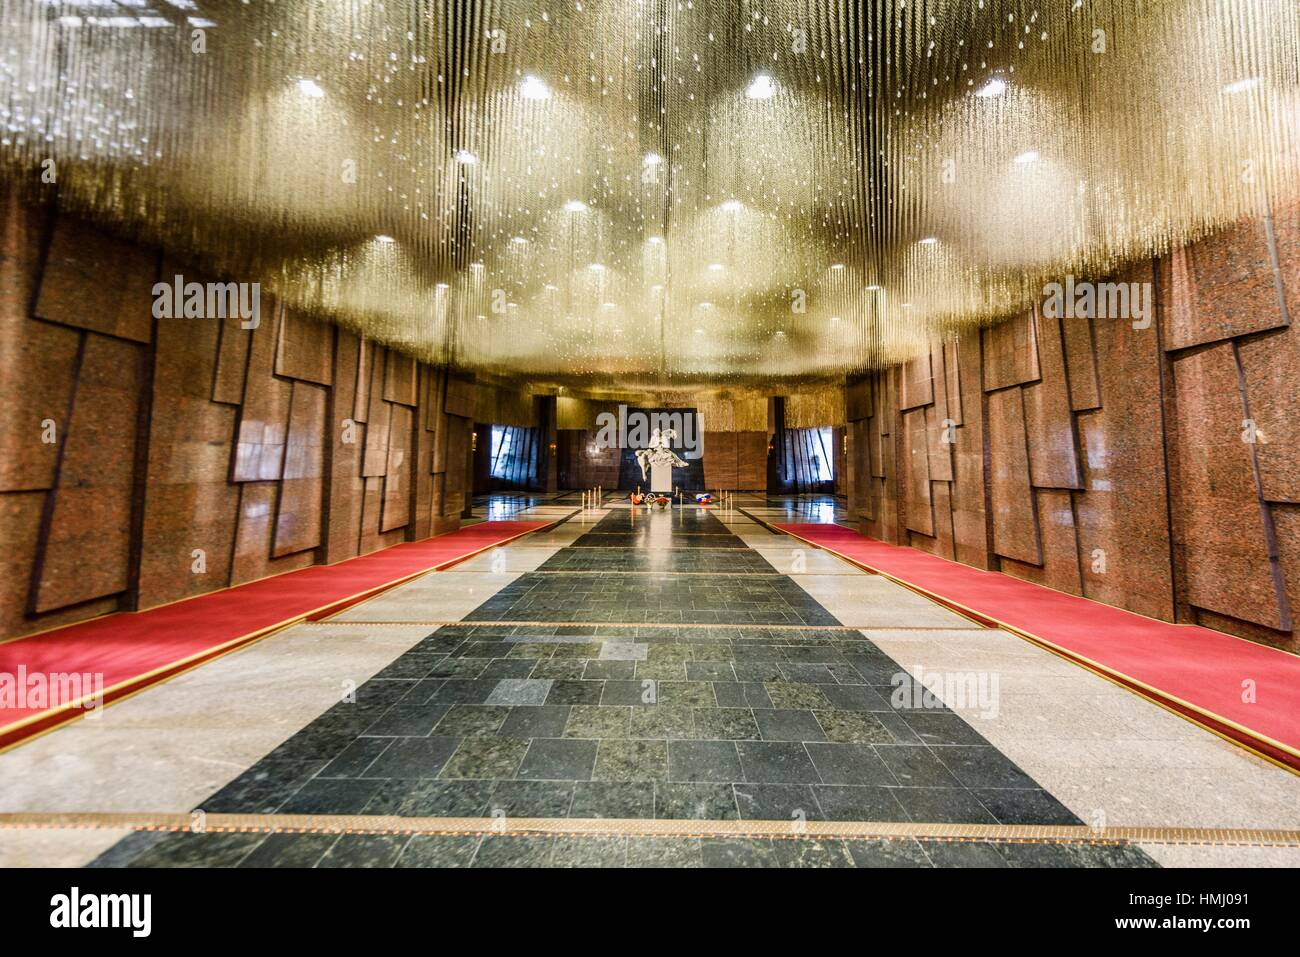 Memorial to victims in the Museum of the Great Patriotic War (Moscow). - Stock Image